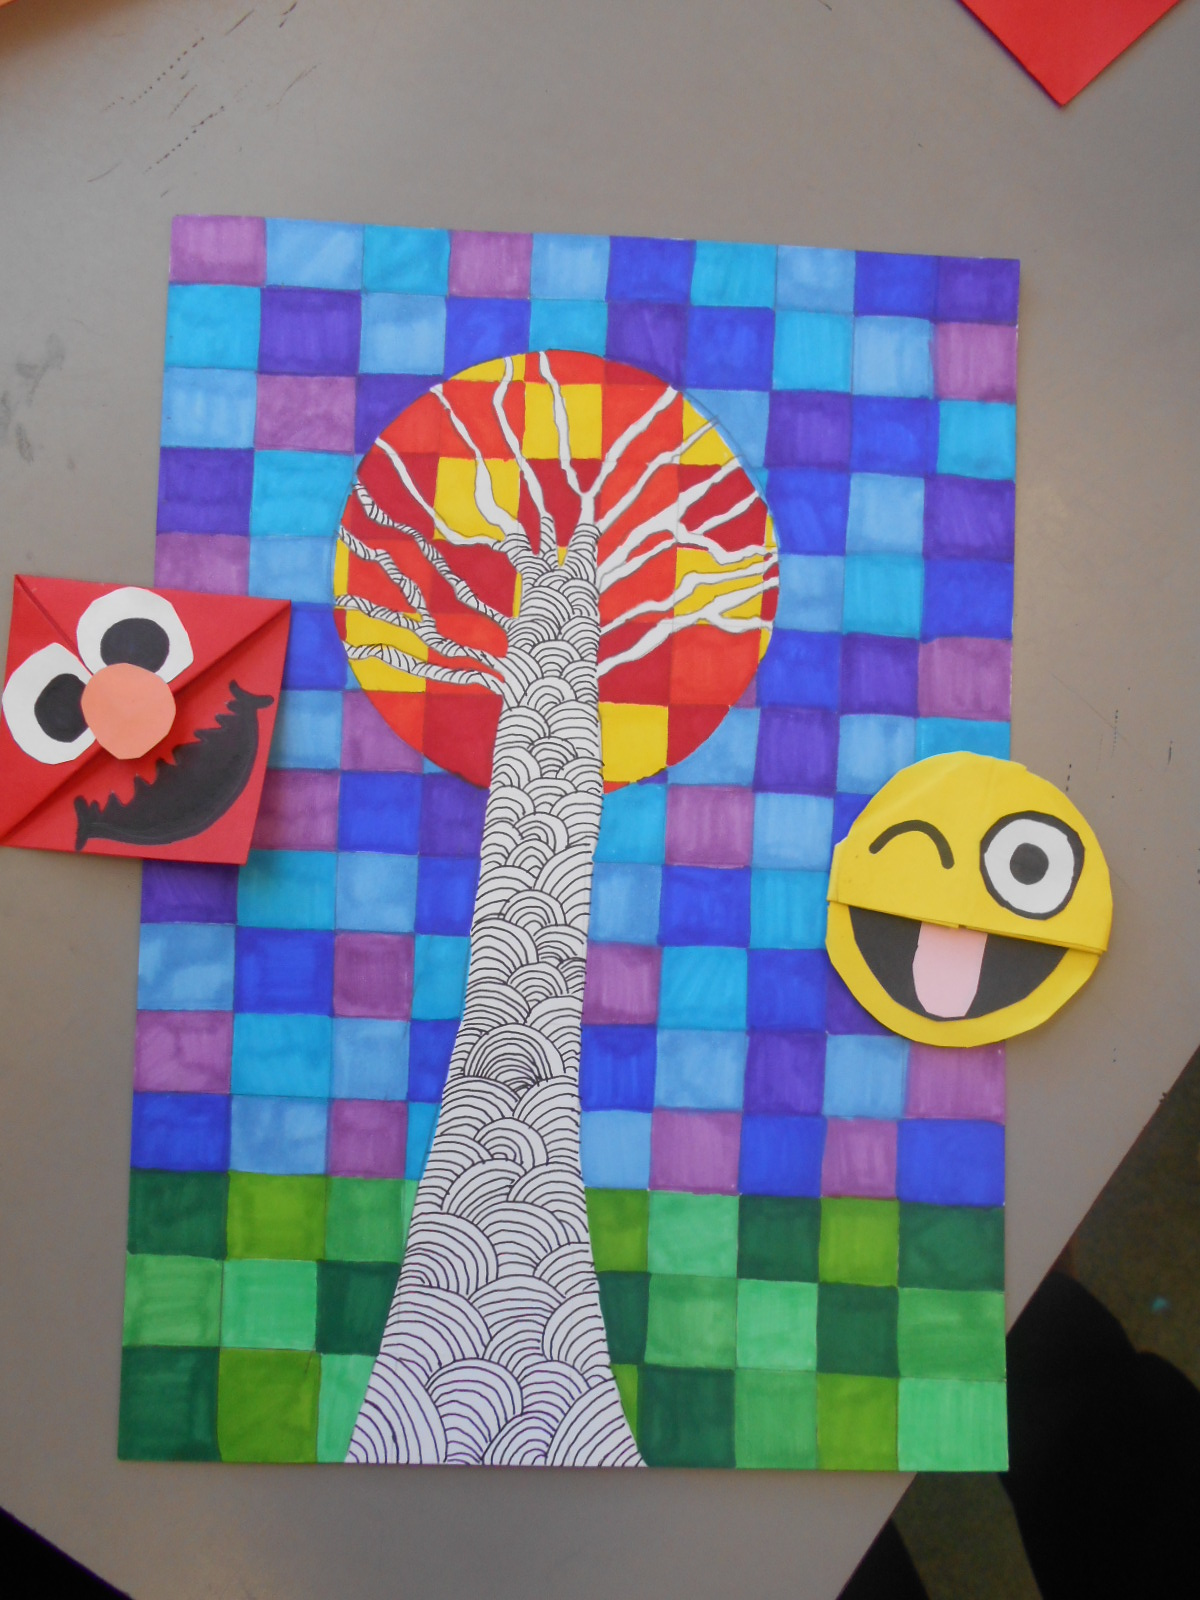 Bricks & Wood School Art Activities Corner Bookmarks And. Wood Headboard Ideas Pictures. Craft Ideas Pictures. Diy Desk Accessories Ideas. Baby Ideas For First Birthday. Ideas To Decorate A Kitchen Soffit. Storage Ideas Pinterest. Really Small Backyard Ideas. Christmas Gift Ideas For Zombie Lovers